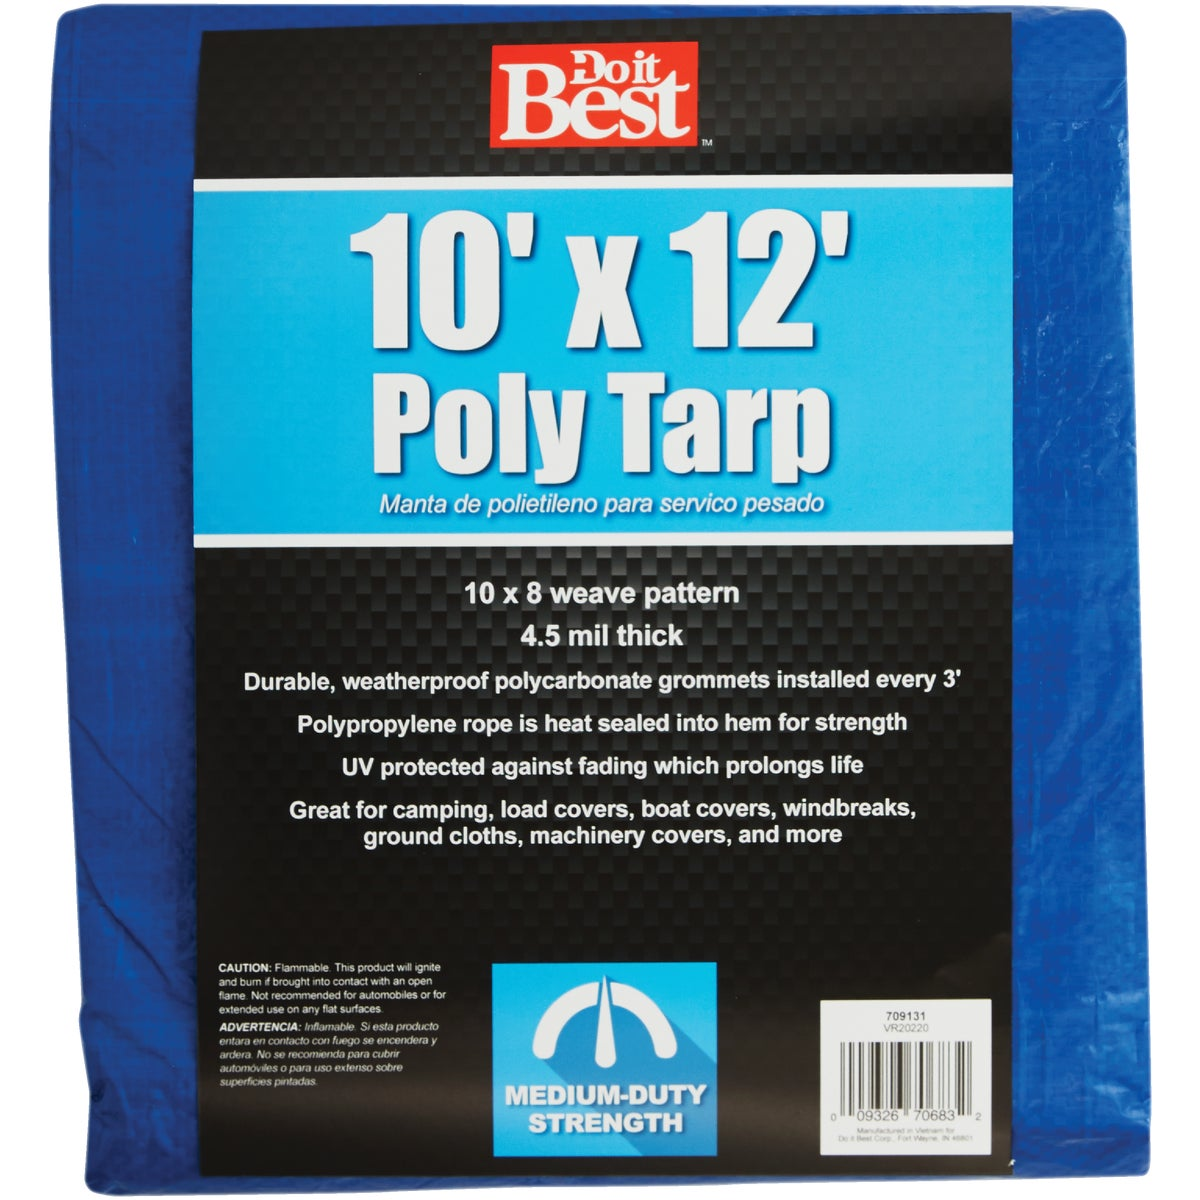 10X12 BLUE MED DUTY TARP - 709131 by Do it Best